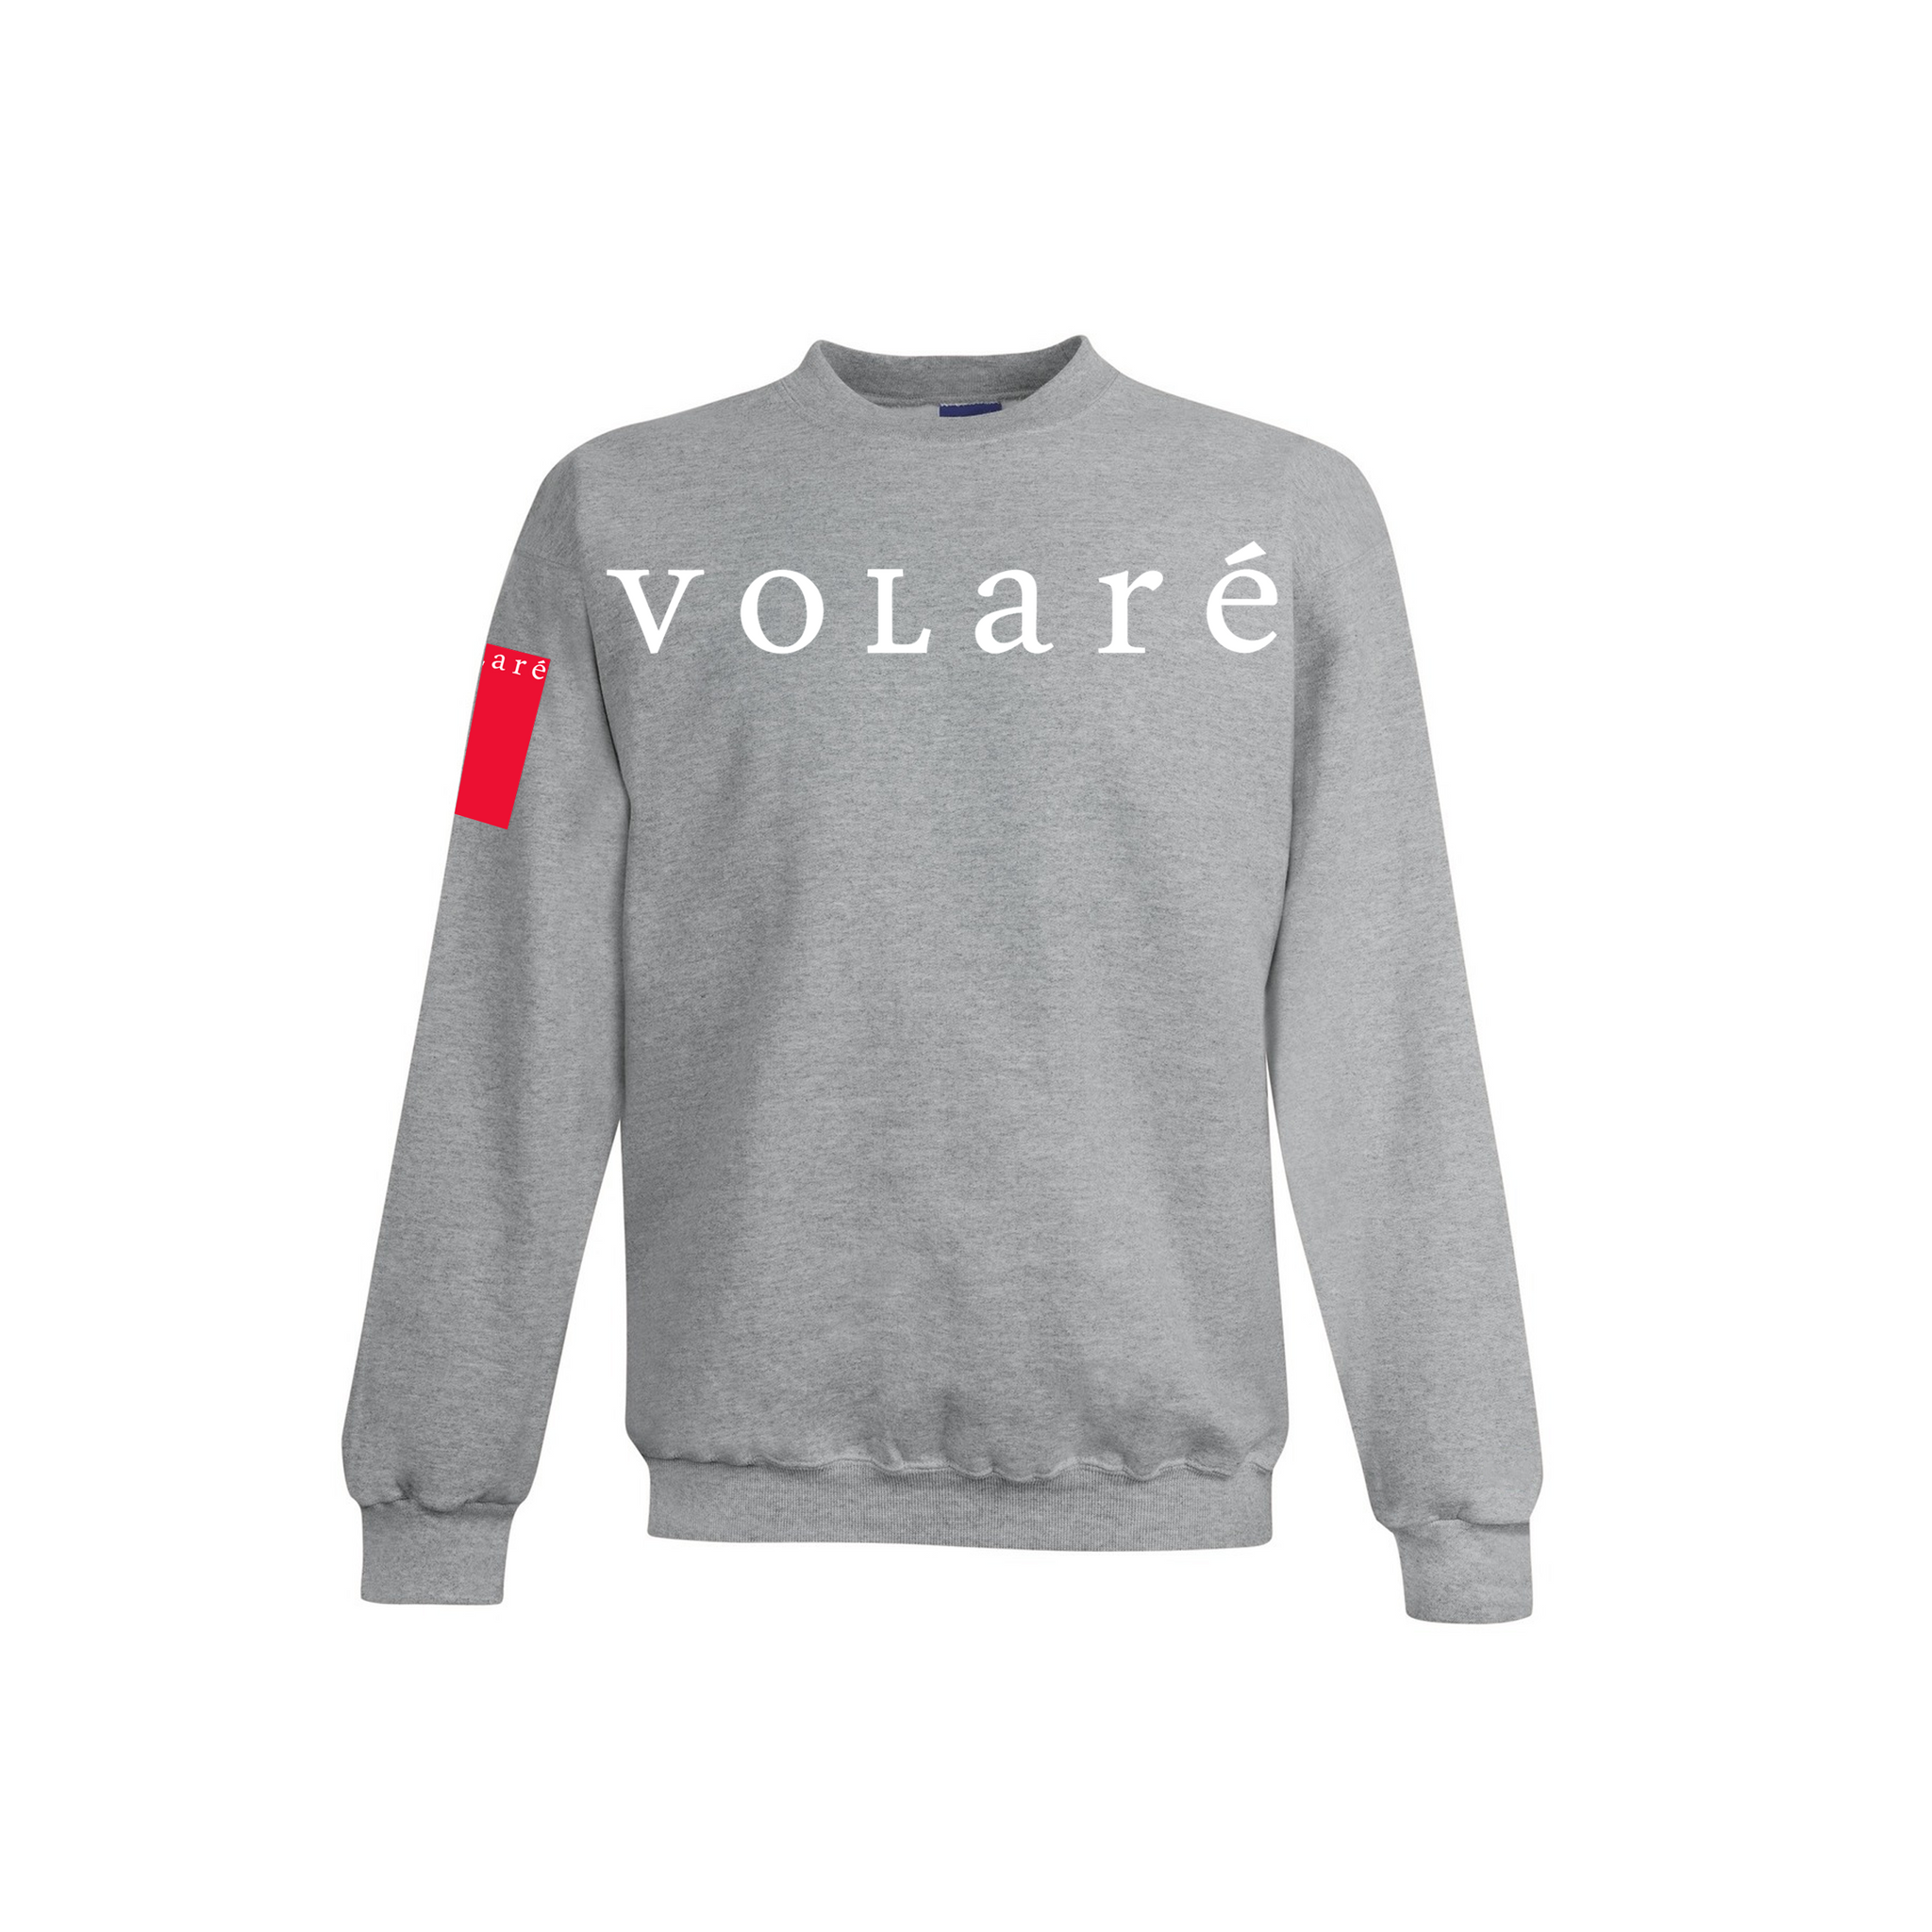 volare™ Wordmark Crewneck Sweater - Light Grey